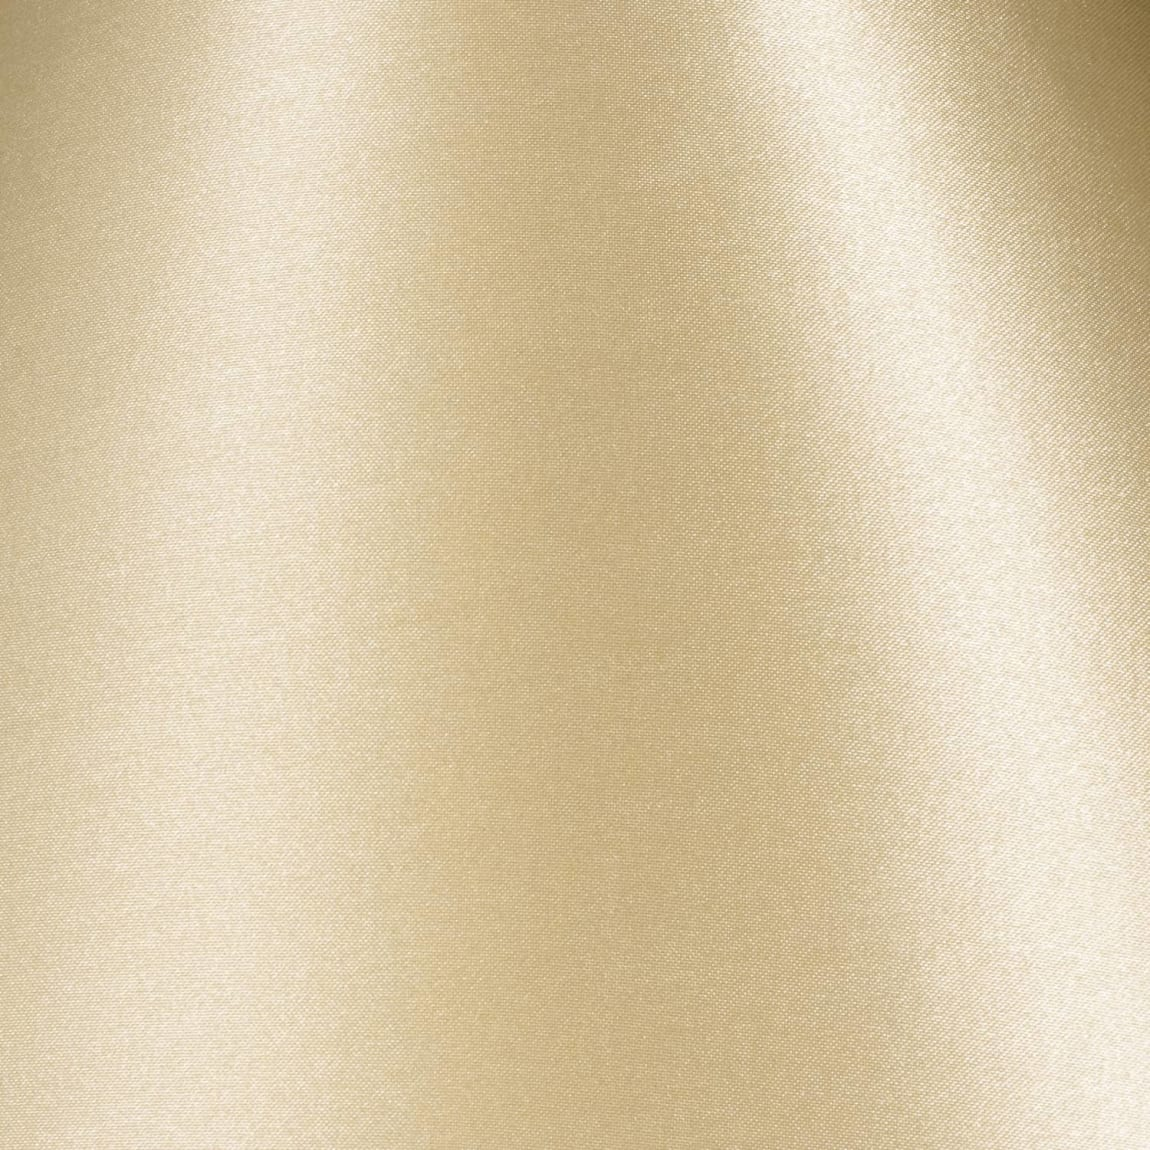 Coolie Satin Light Shade 12